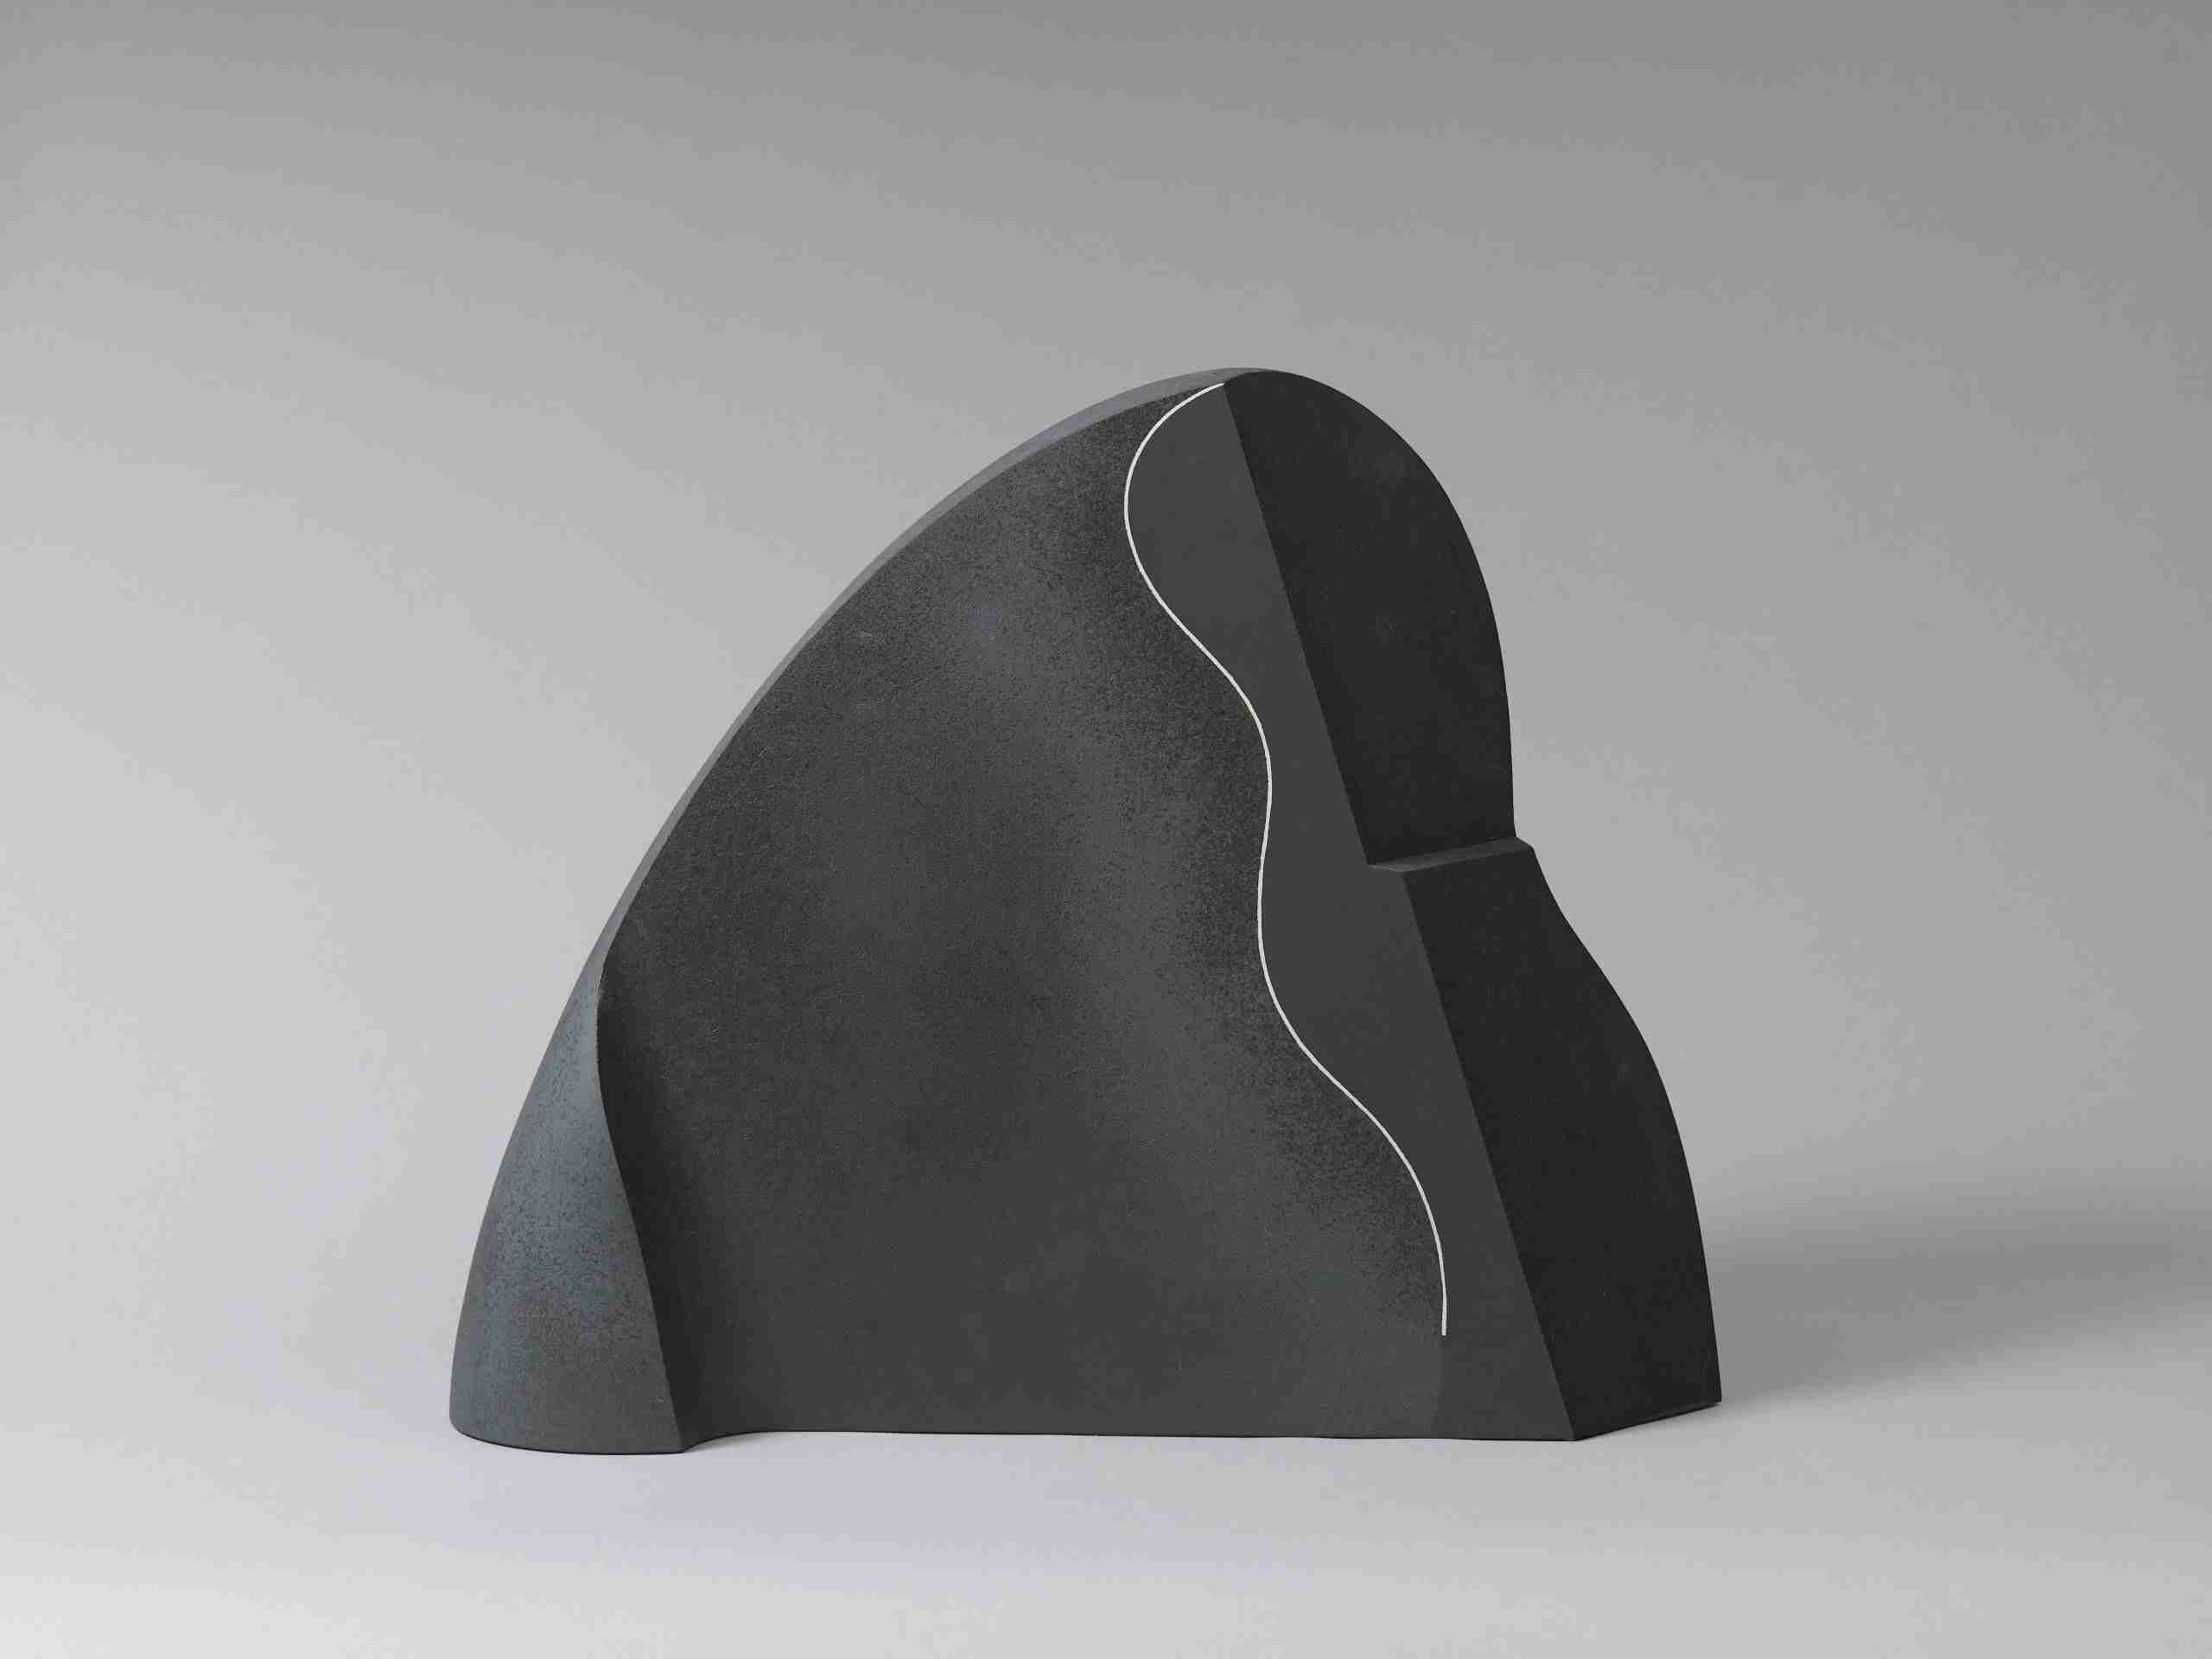 Yasuo Hayashi (b. 1928) A black ceramic sculpture of abstract form Dated '85 and signed Yasuo Japan, 20th century, 1985